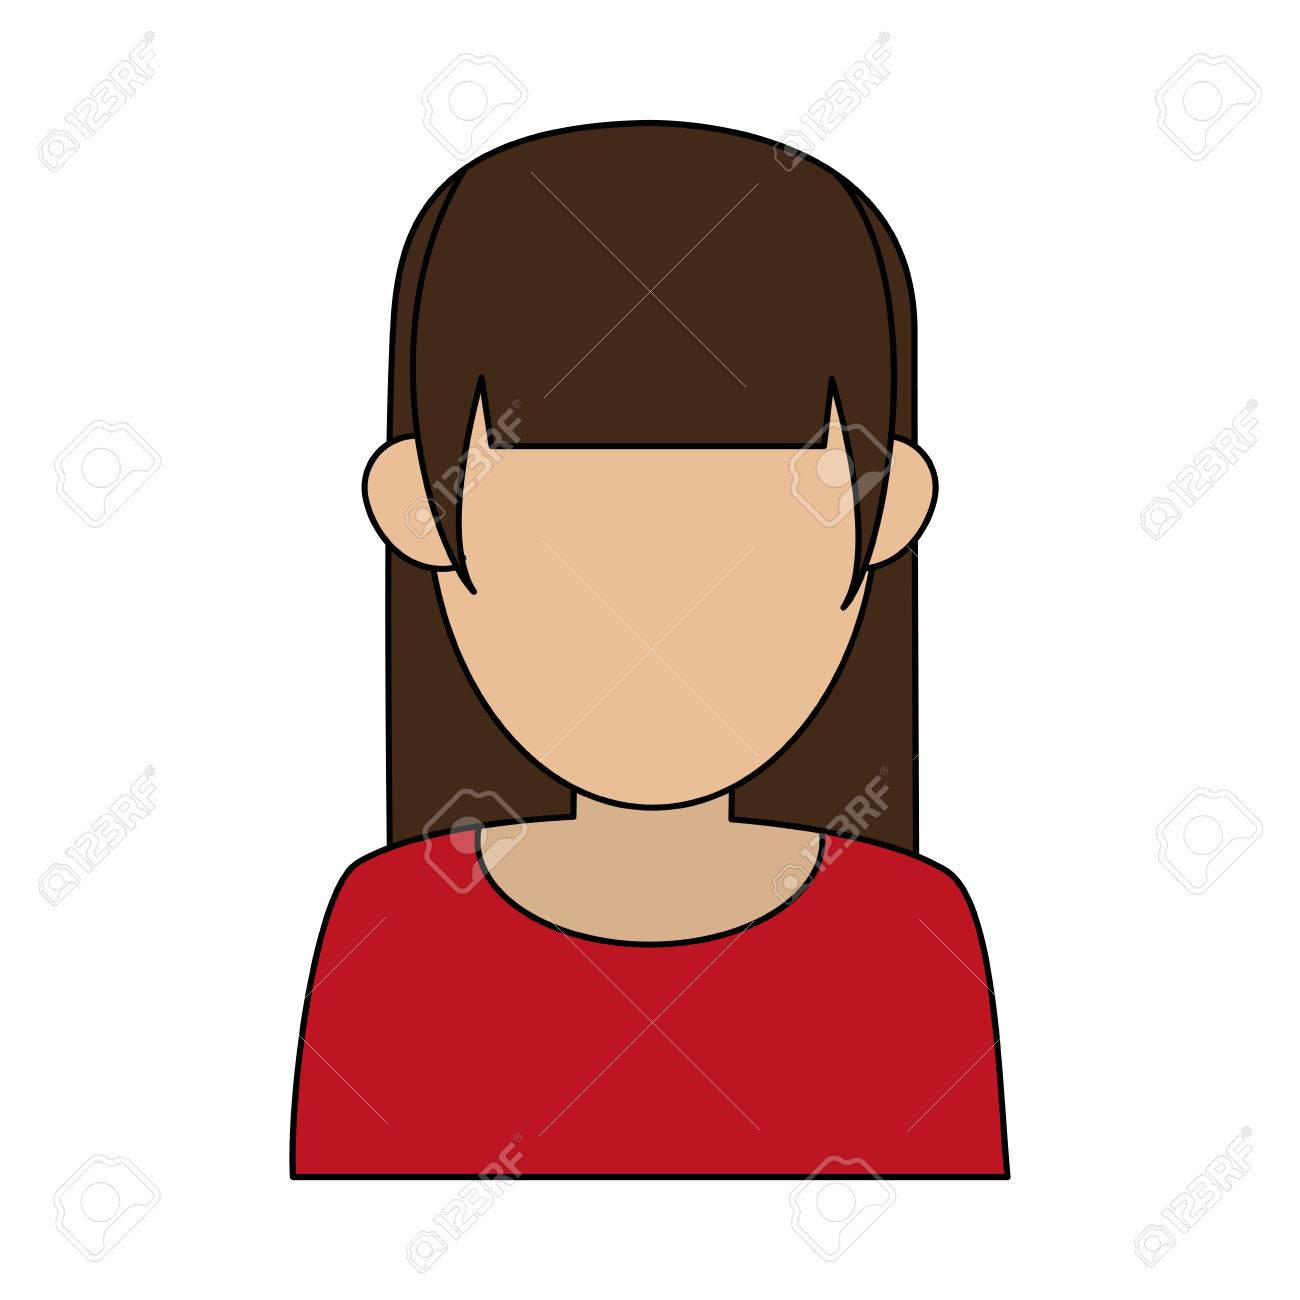 Faceless Woman With Hair Fringe Icon Image Vector Illustration